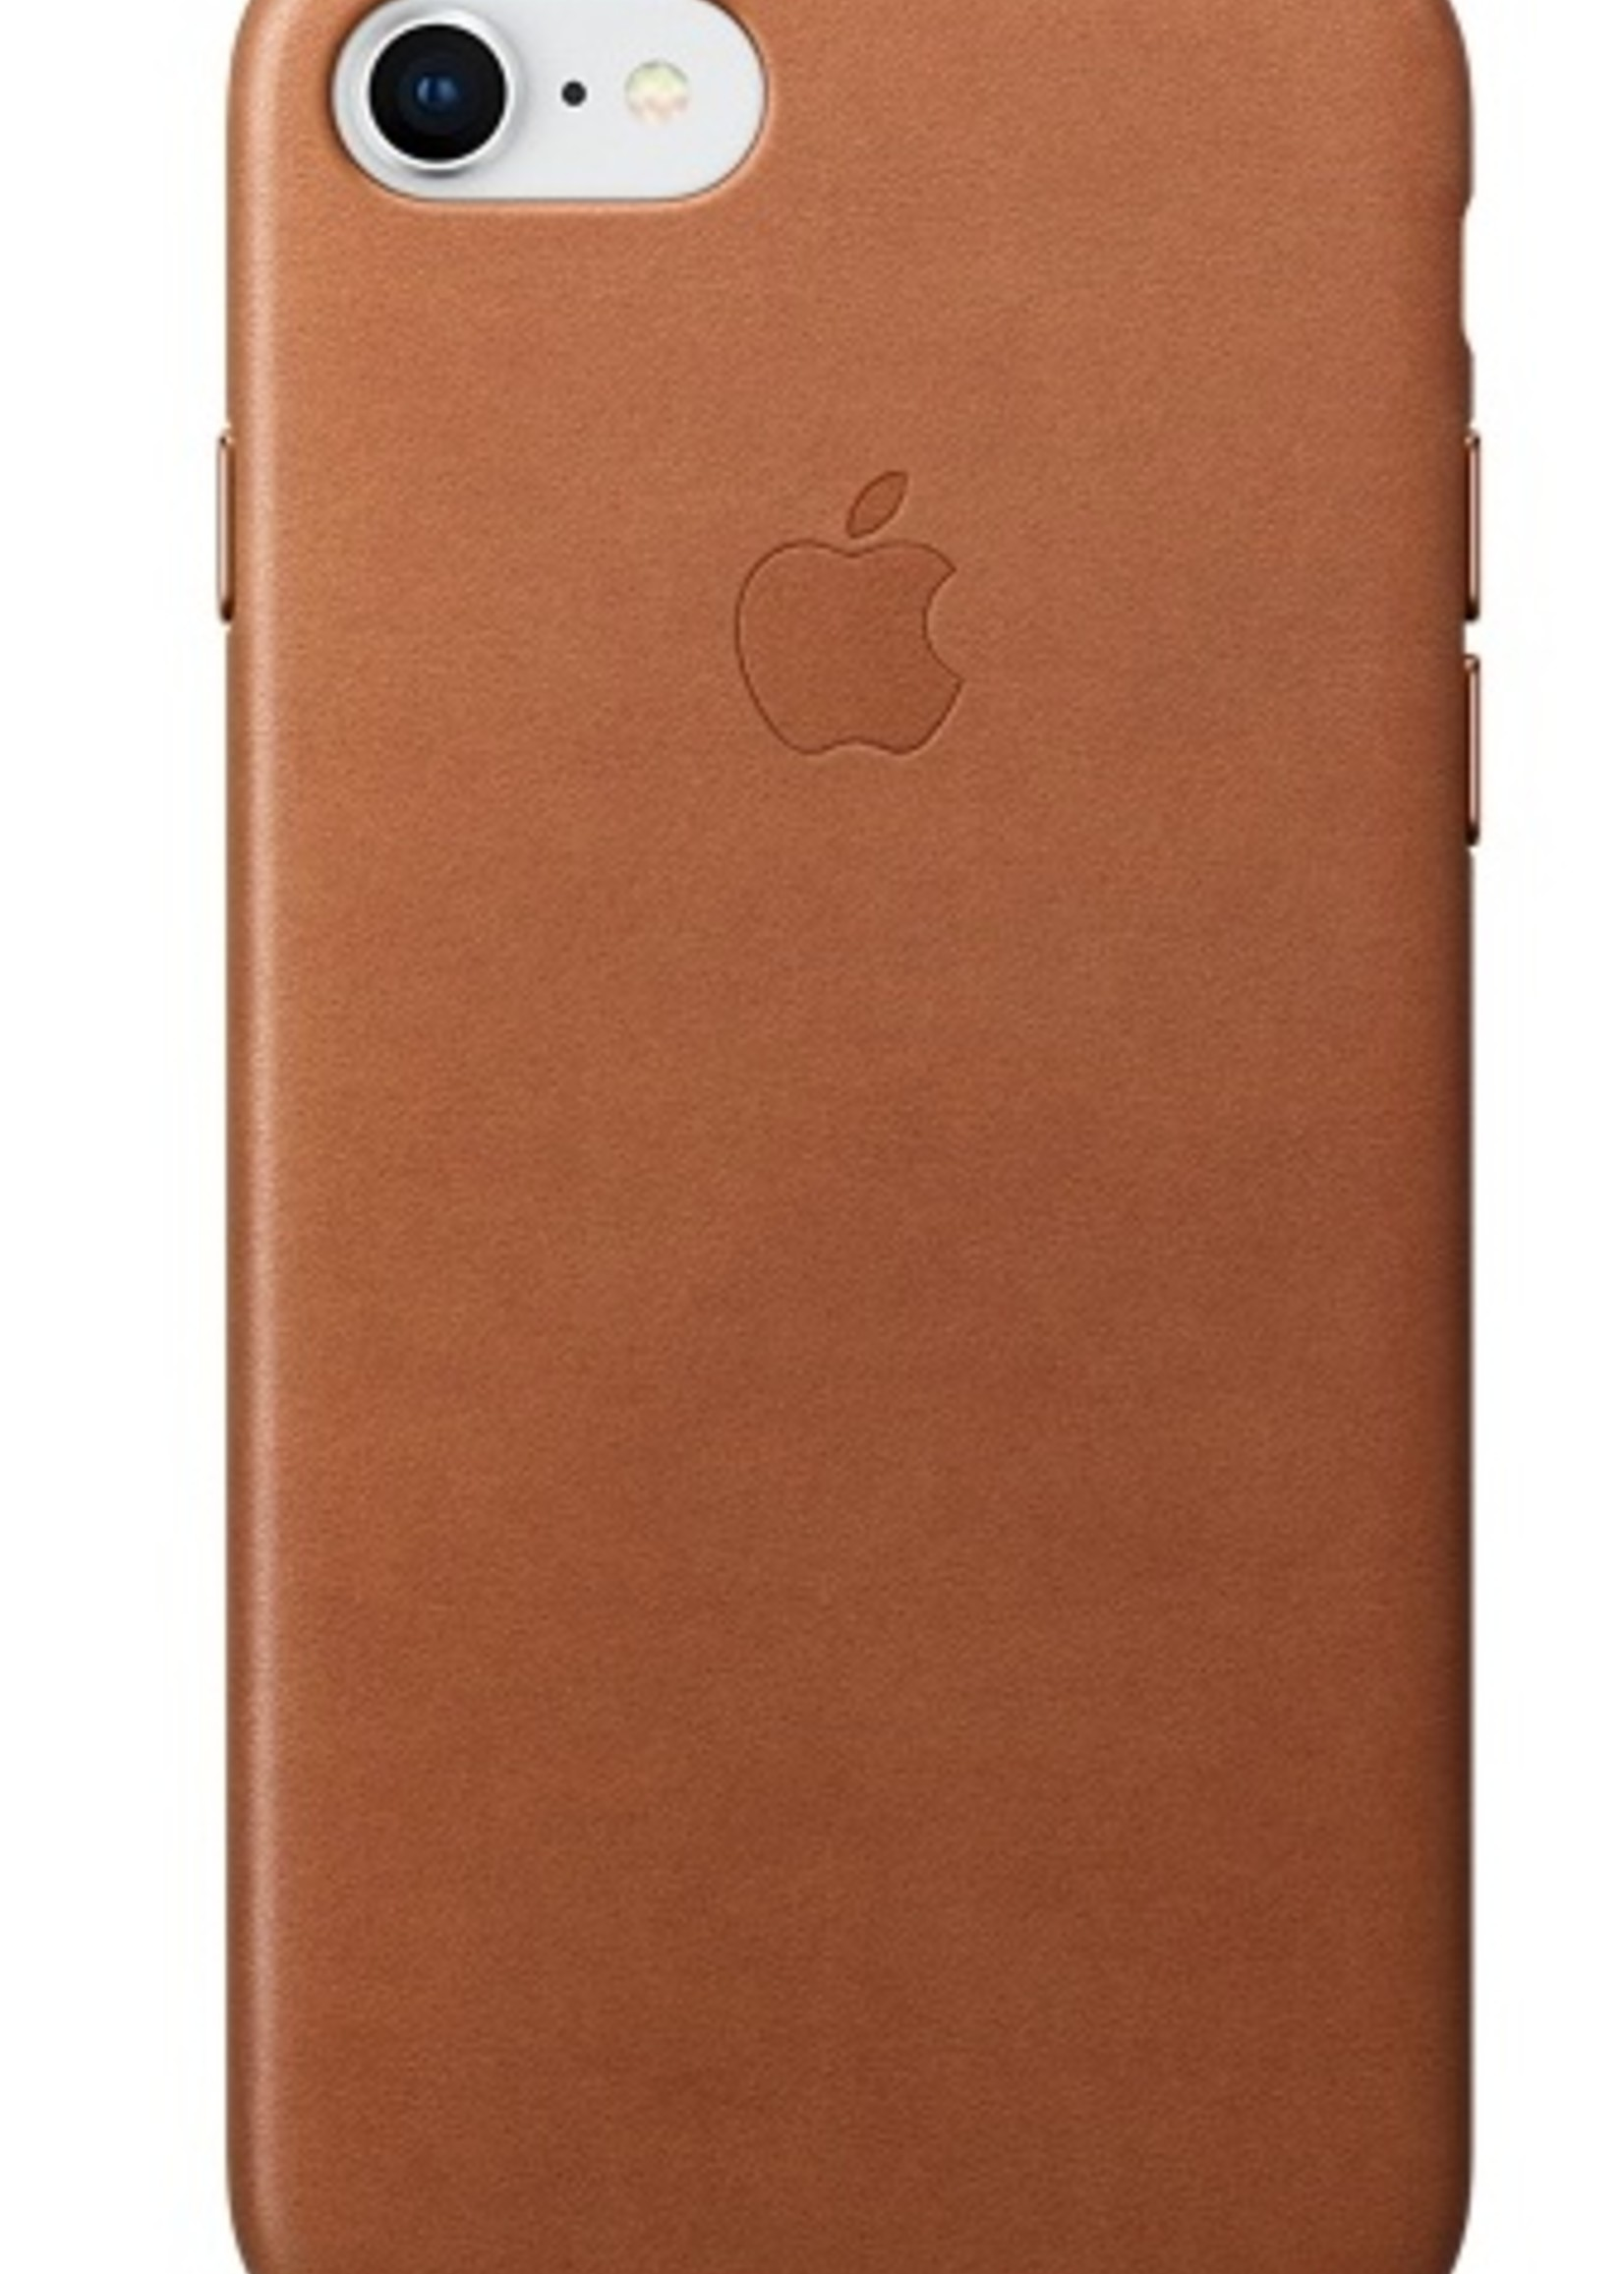 iPhone 8/7 Leather Case - Saddle Brown